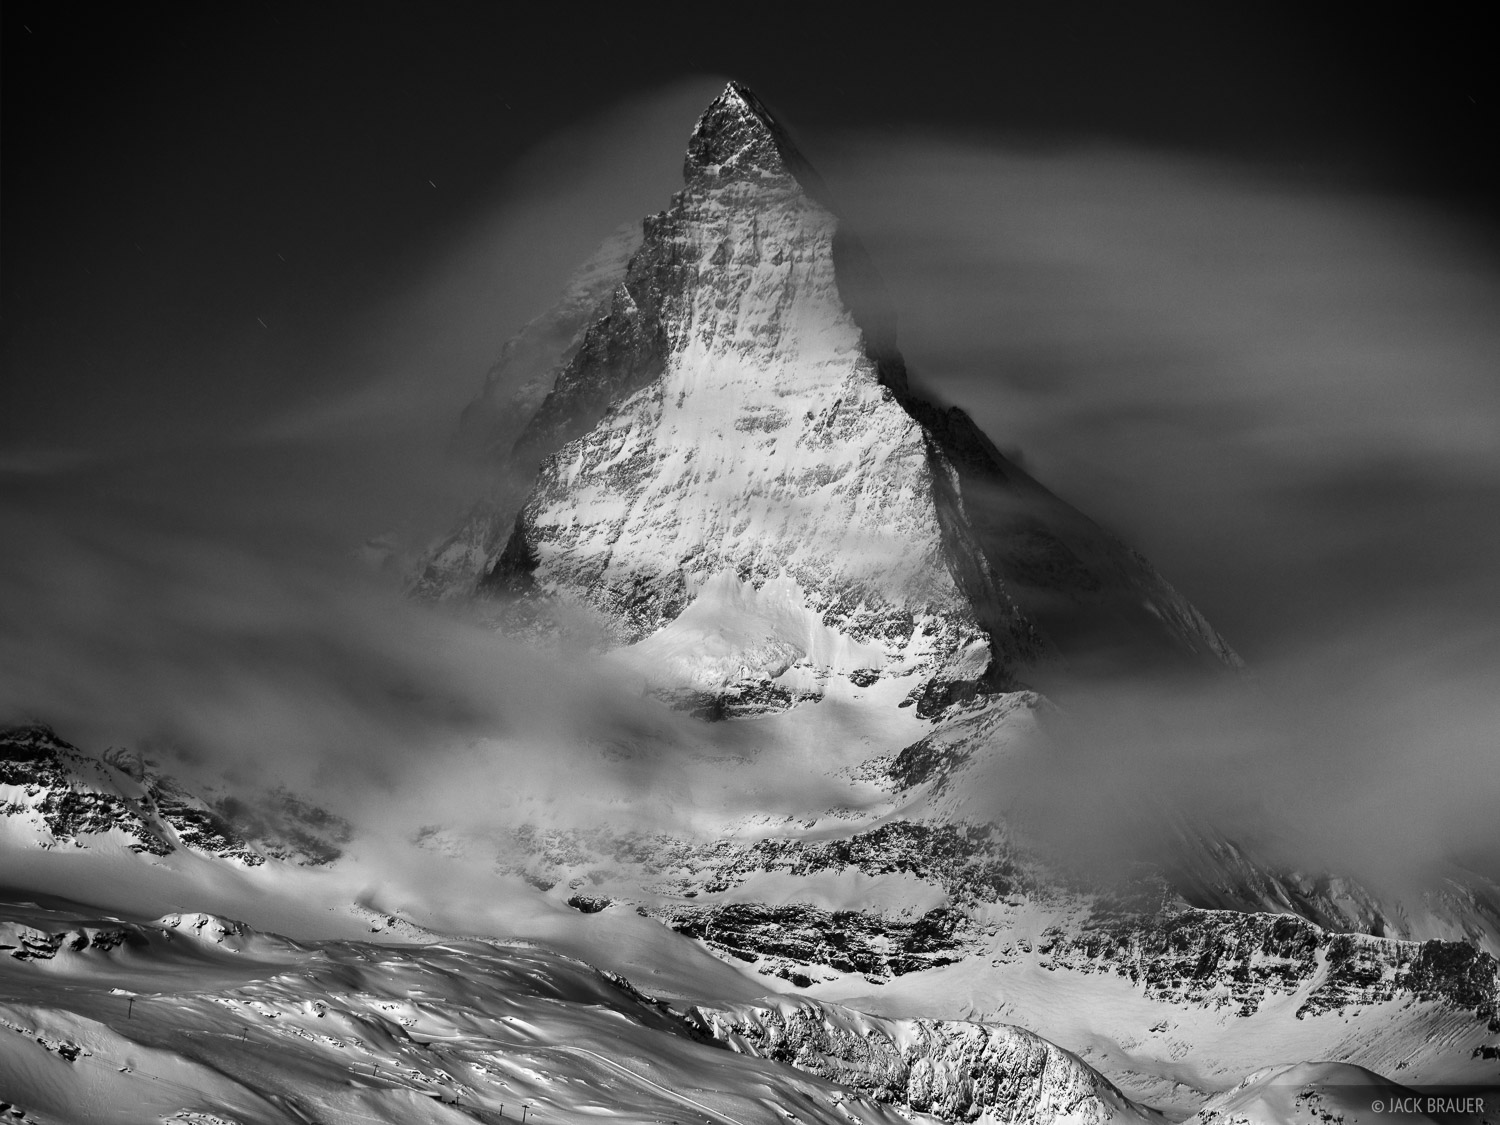 Matterhorn, winter, moonlight, Zermatt, Switzerland, photo